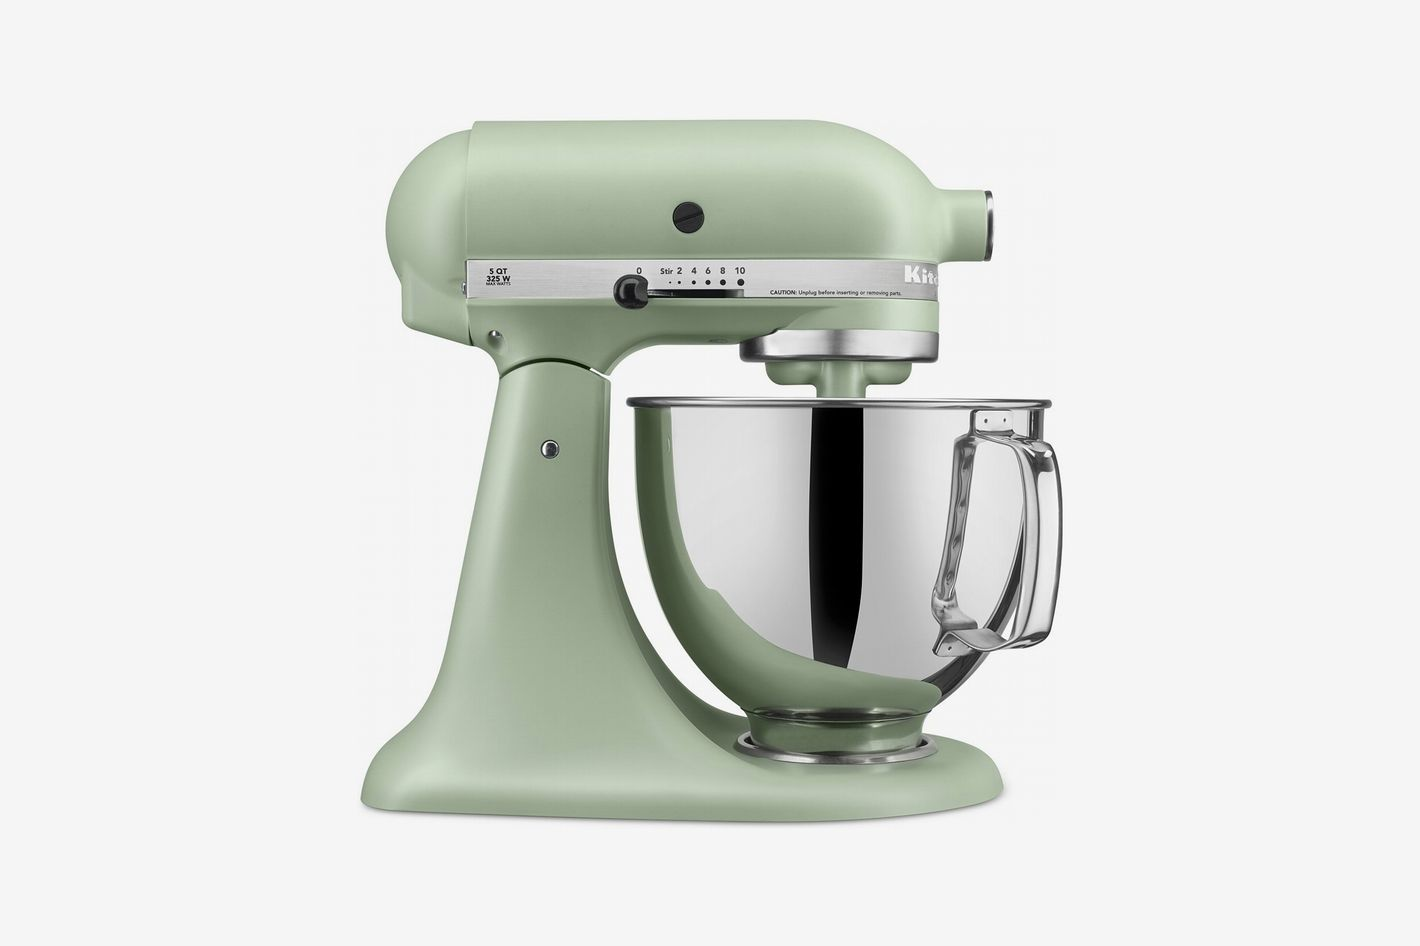 Best Macy's Black Friday Kitchen and Appliance Deals. KitchenAid 5-Quart Architect Series Tilt-Head Stand Mixer